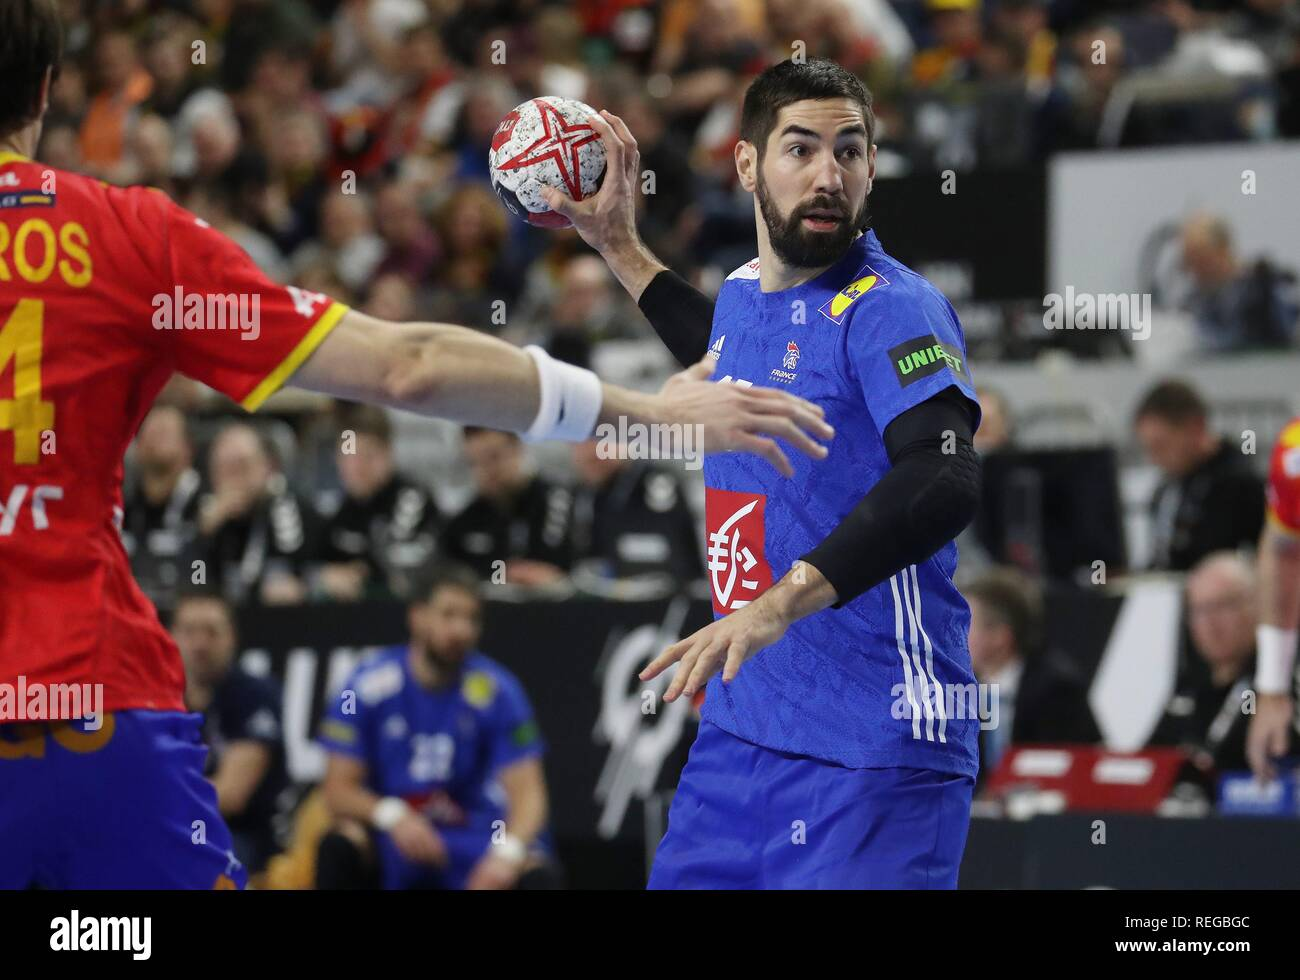 firo: 19.01.2019, Handball: World Cup World Cup Main Round France - Spain. Nikola Karabatic | usage worldwide - Stock Image